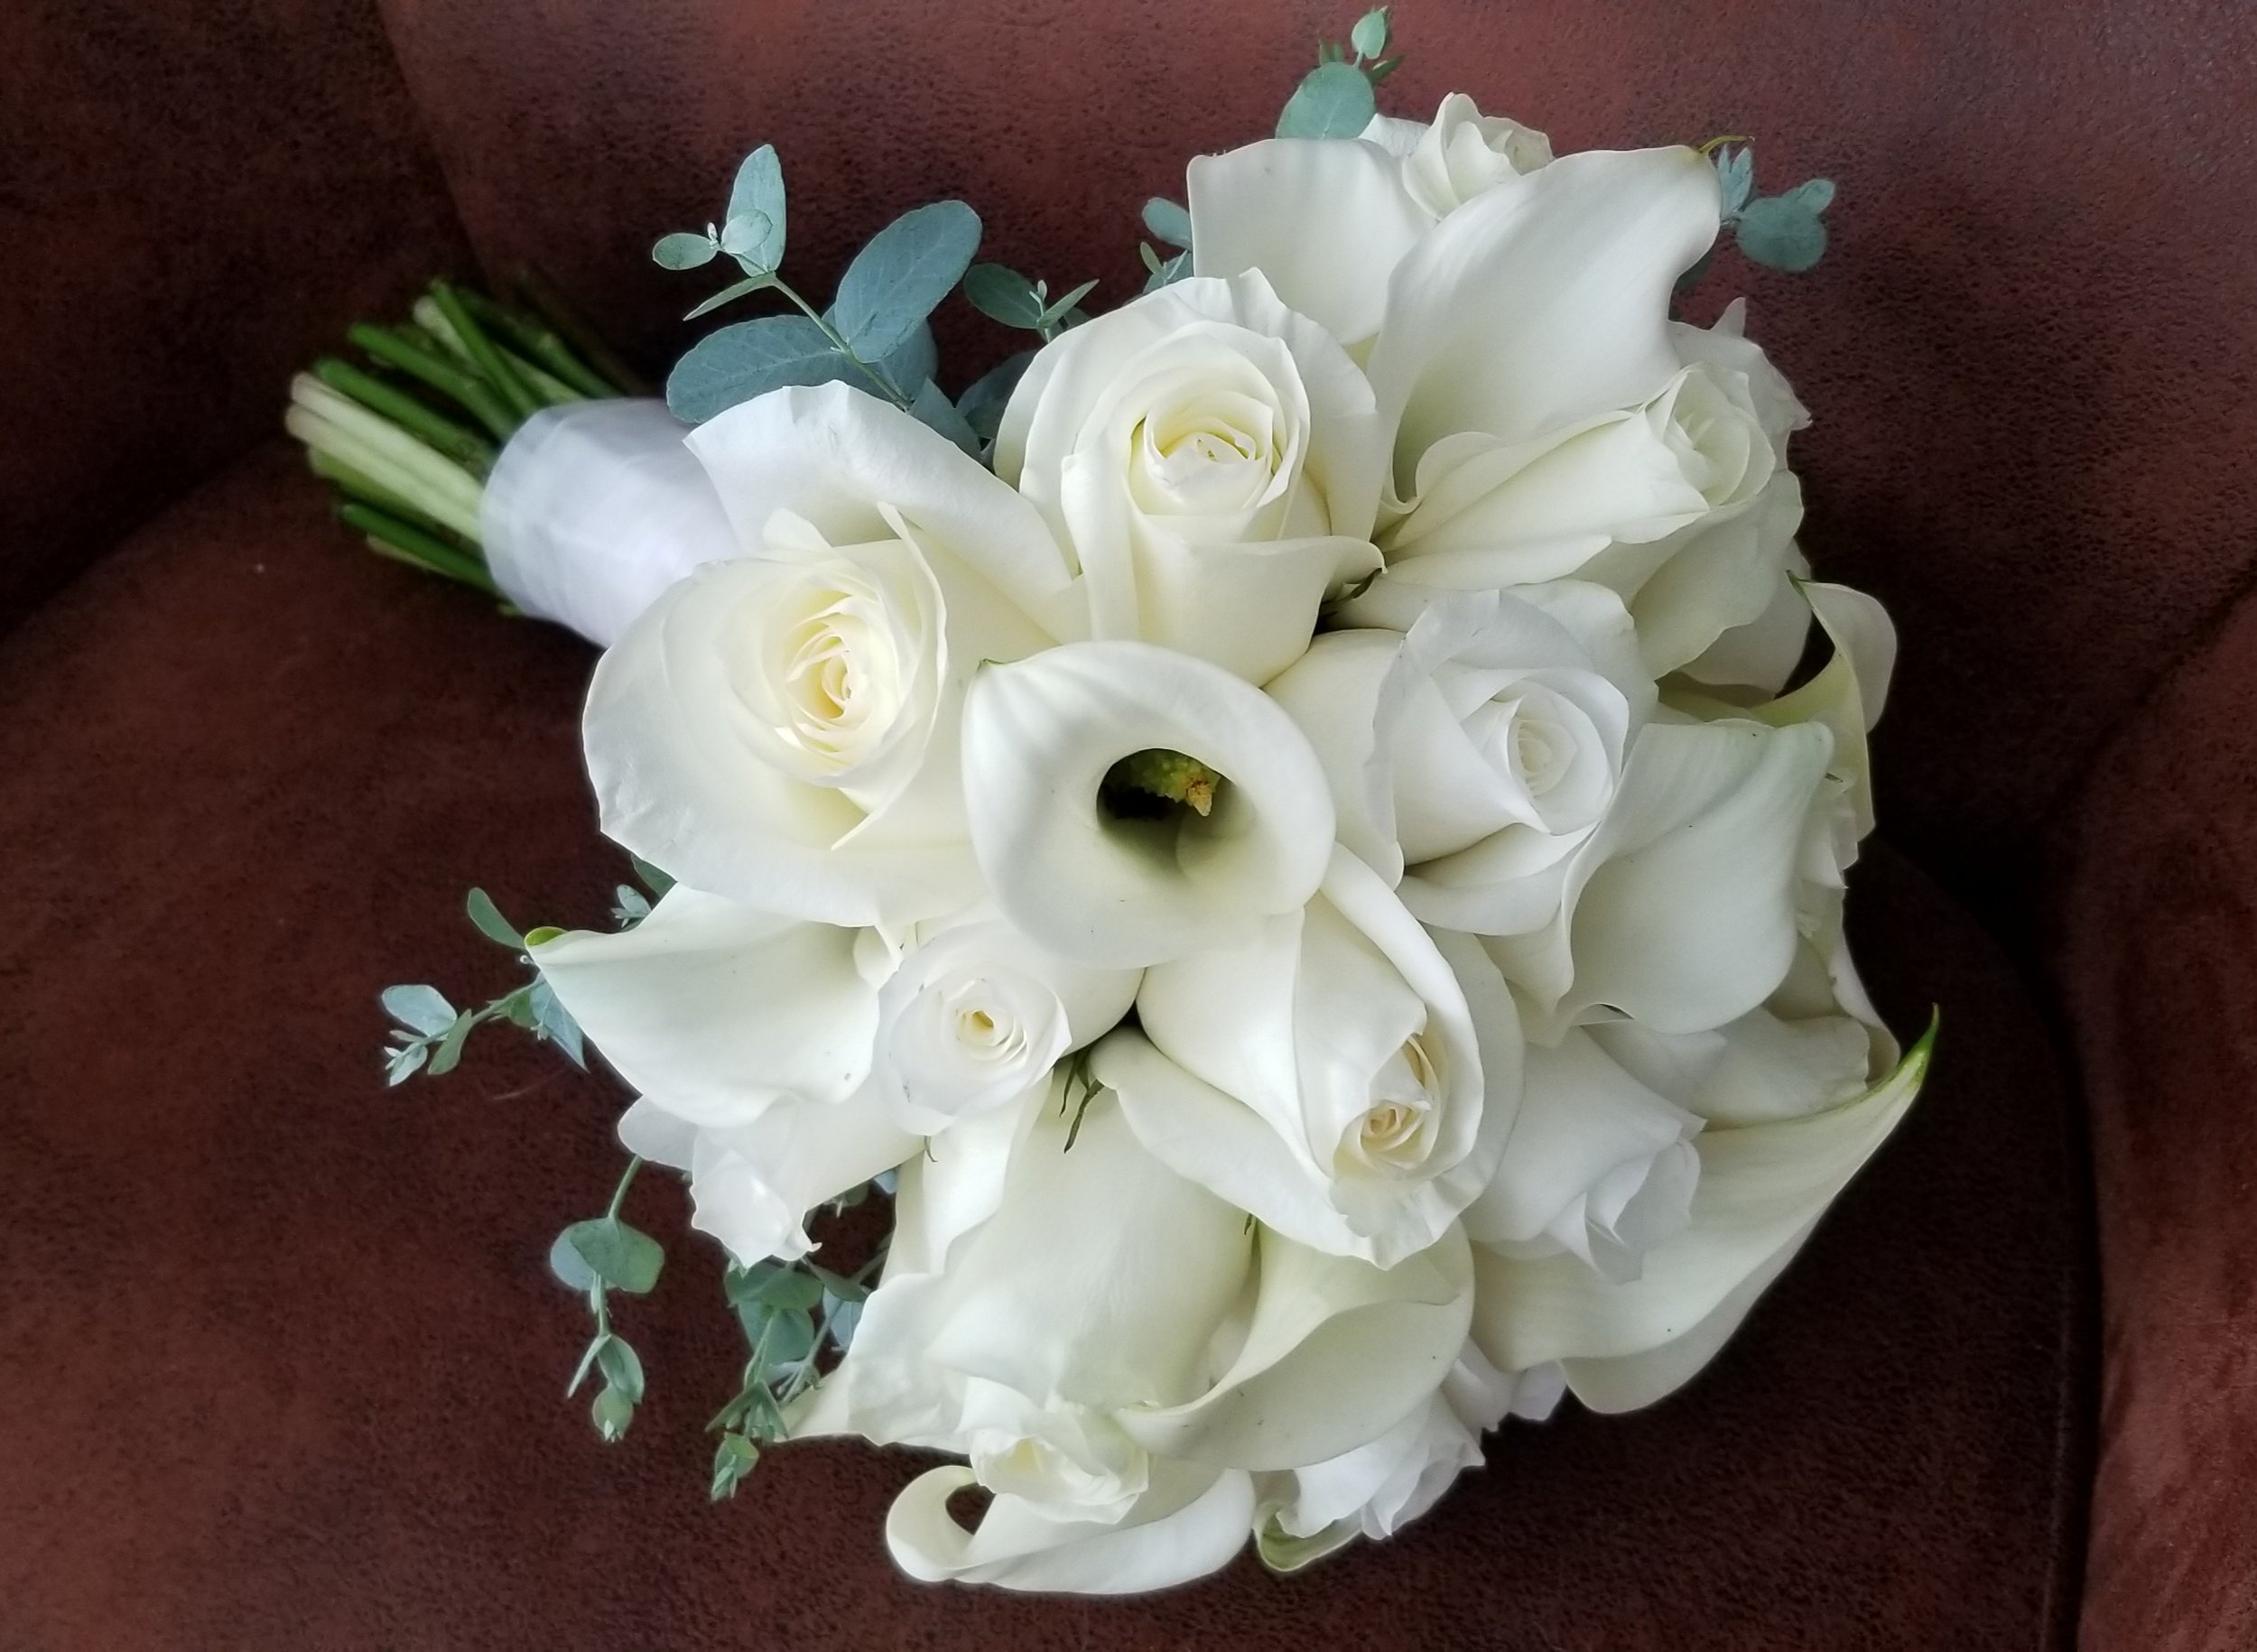 Pure white bridal bouquet featuring white roses and white calla lilies, just a hint of eucalyptus greenery